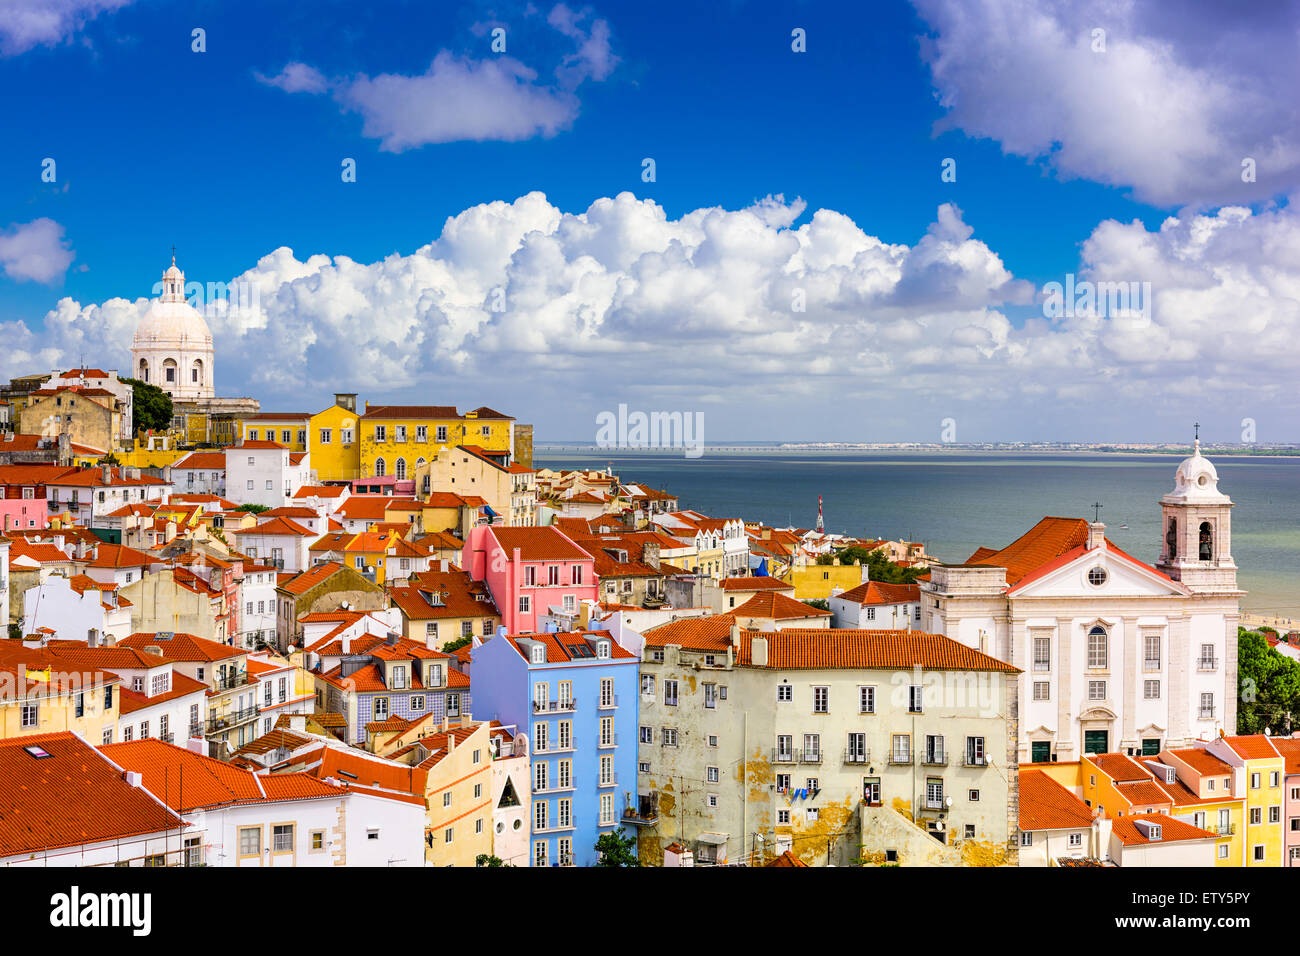 Lisbon, Portugal cityscape in the Alfama District. - Stock Image